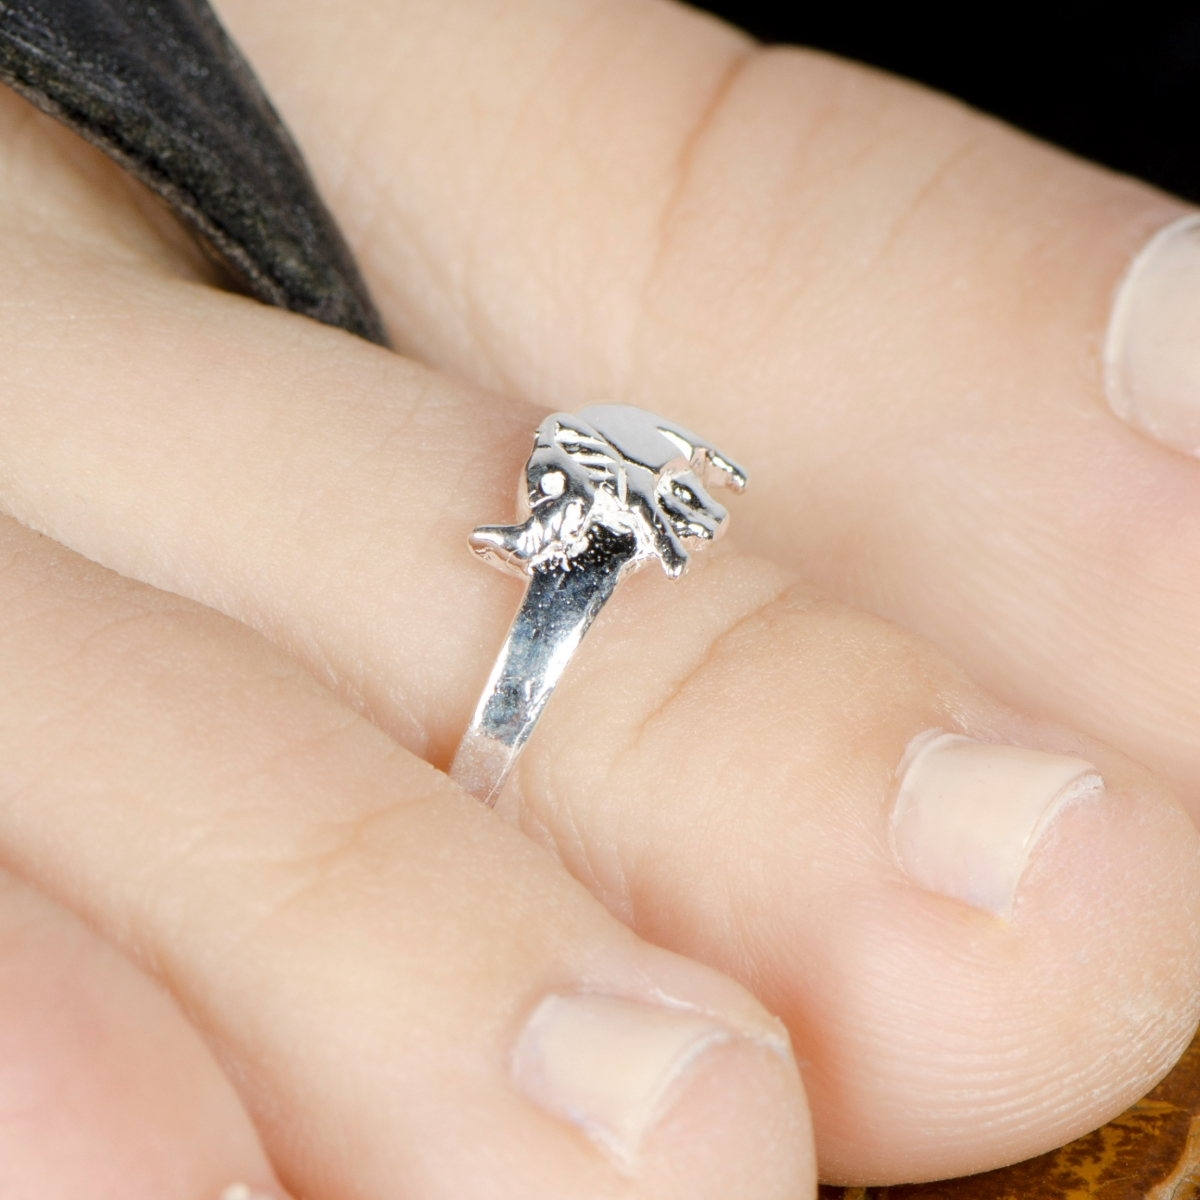 Quiet Wedding: Elephant Diamond Wedding Ring In Most Up To Date Diamond Toe Rings (Gallery 4 of 15)